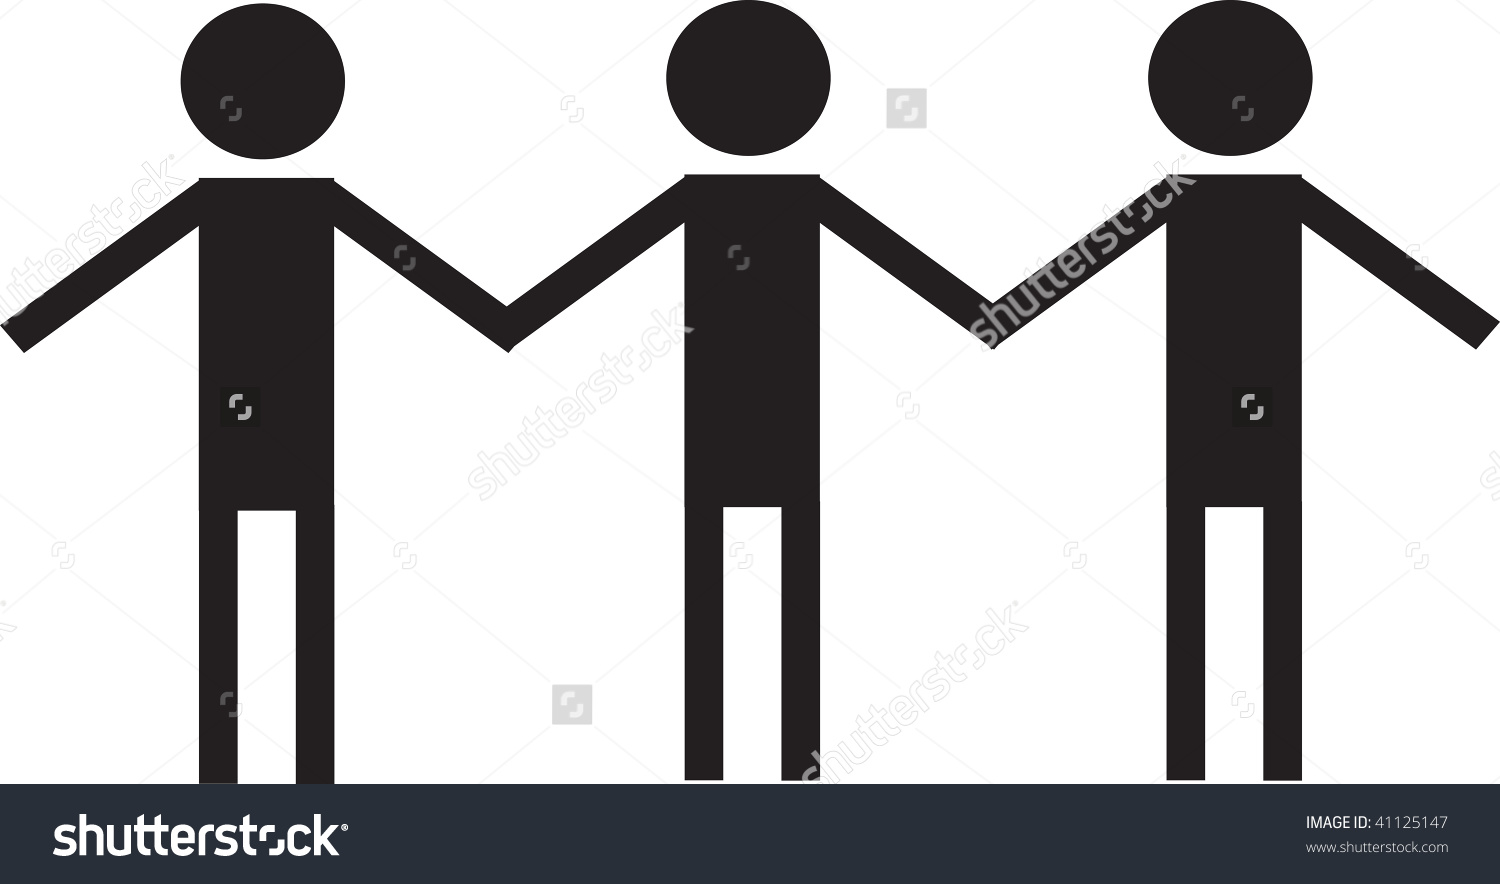 Clip art illustration of three people holding hands.